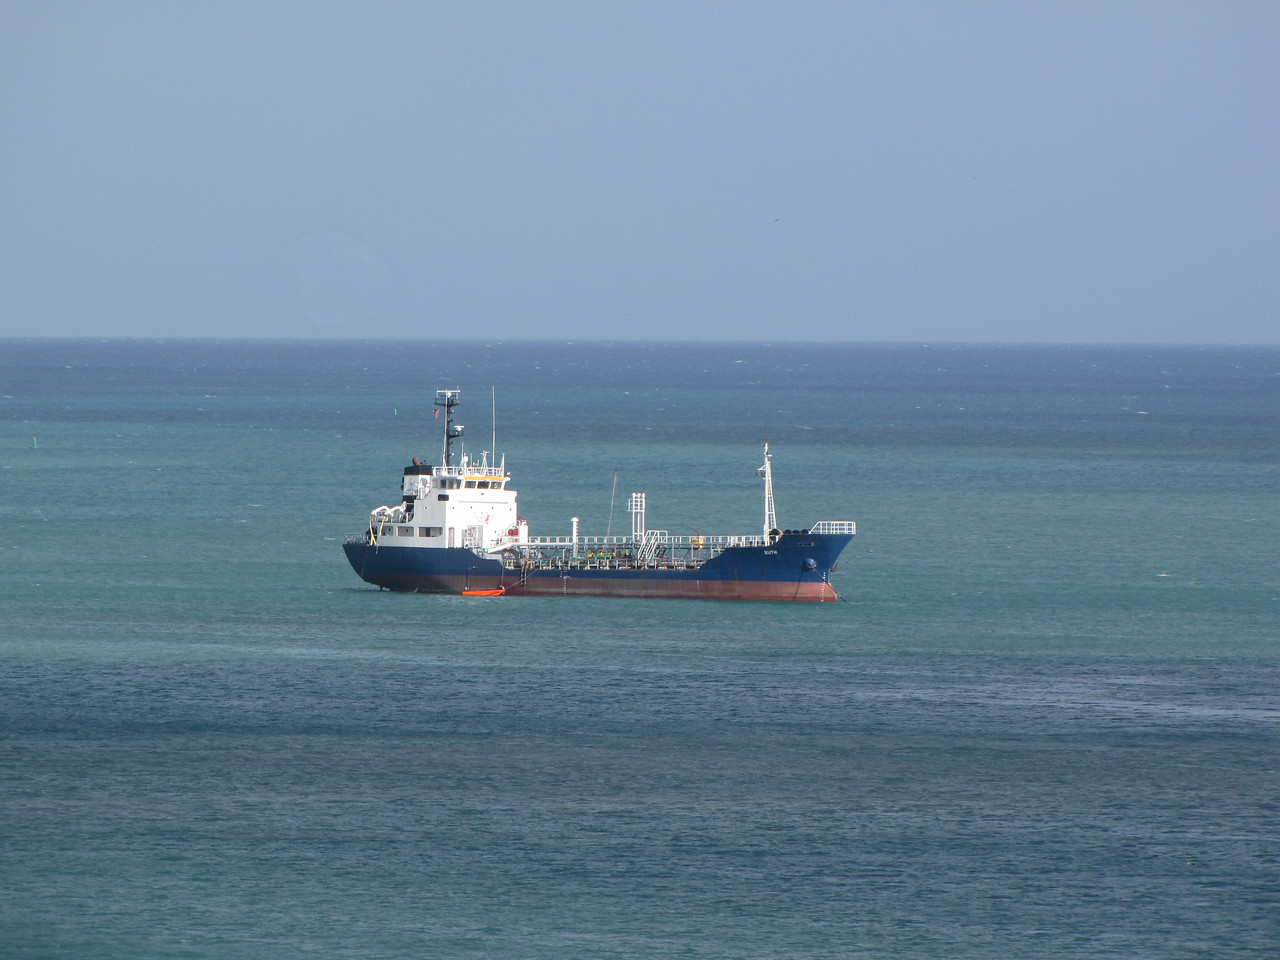 A lone tanker is anchored at the entrance to the harbour.